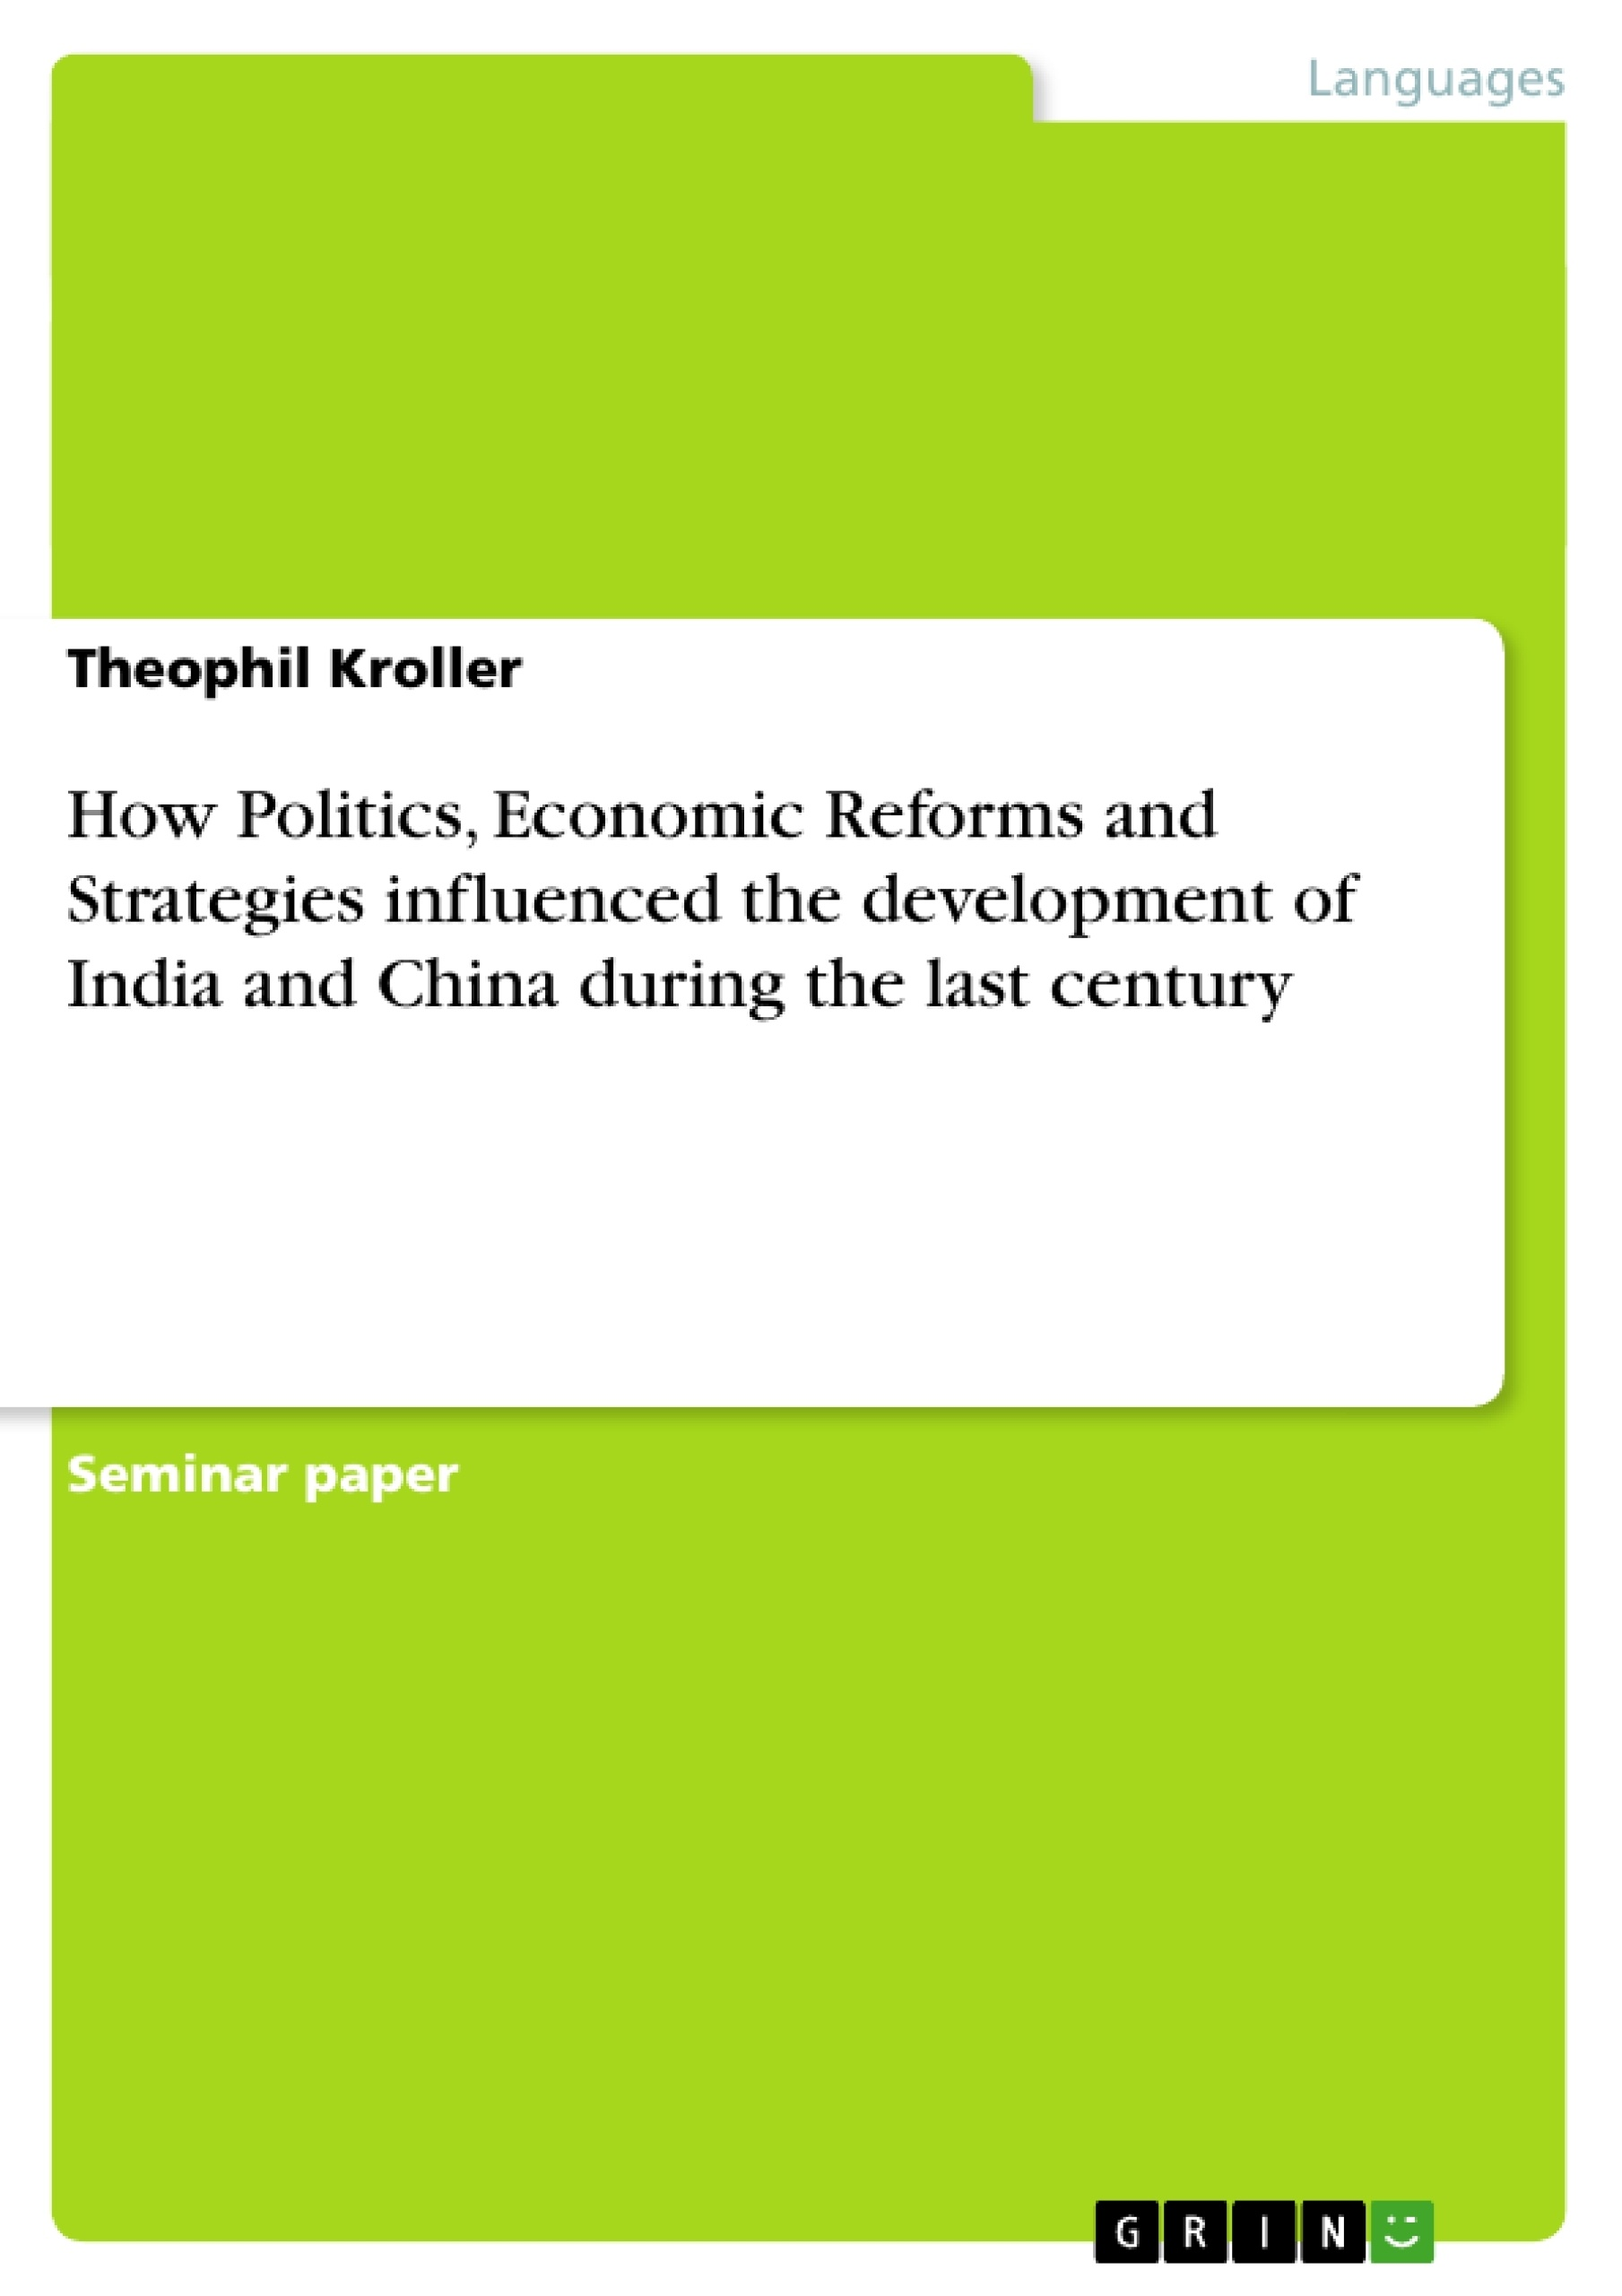 Title: How Politics, Economic Reforms and Strategies influenced the development of India and China during the last century